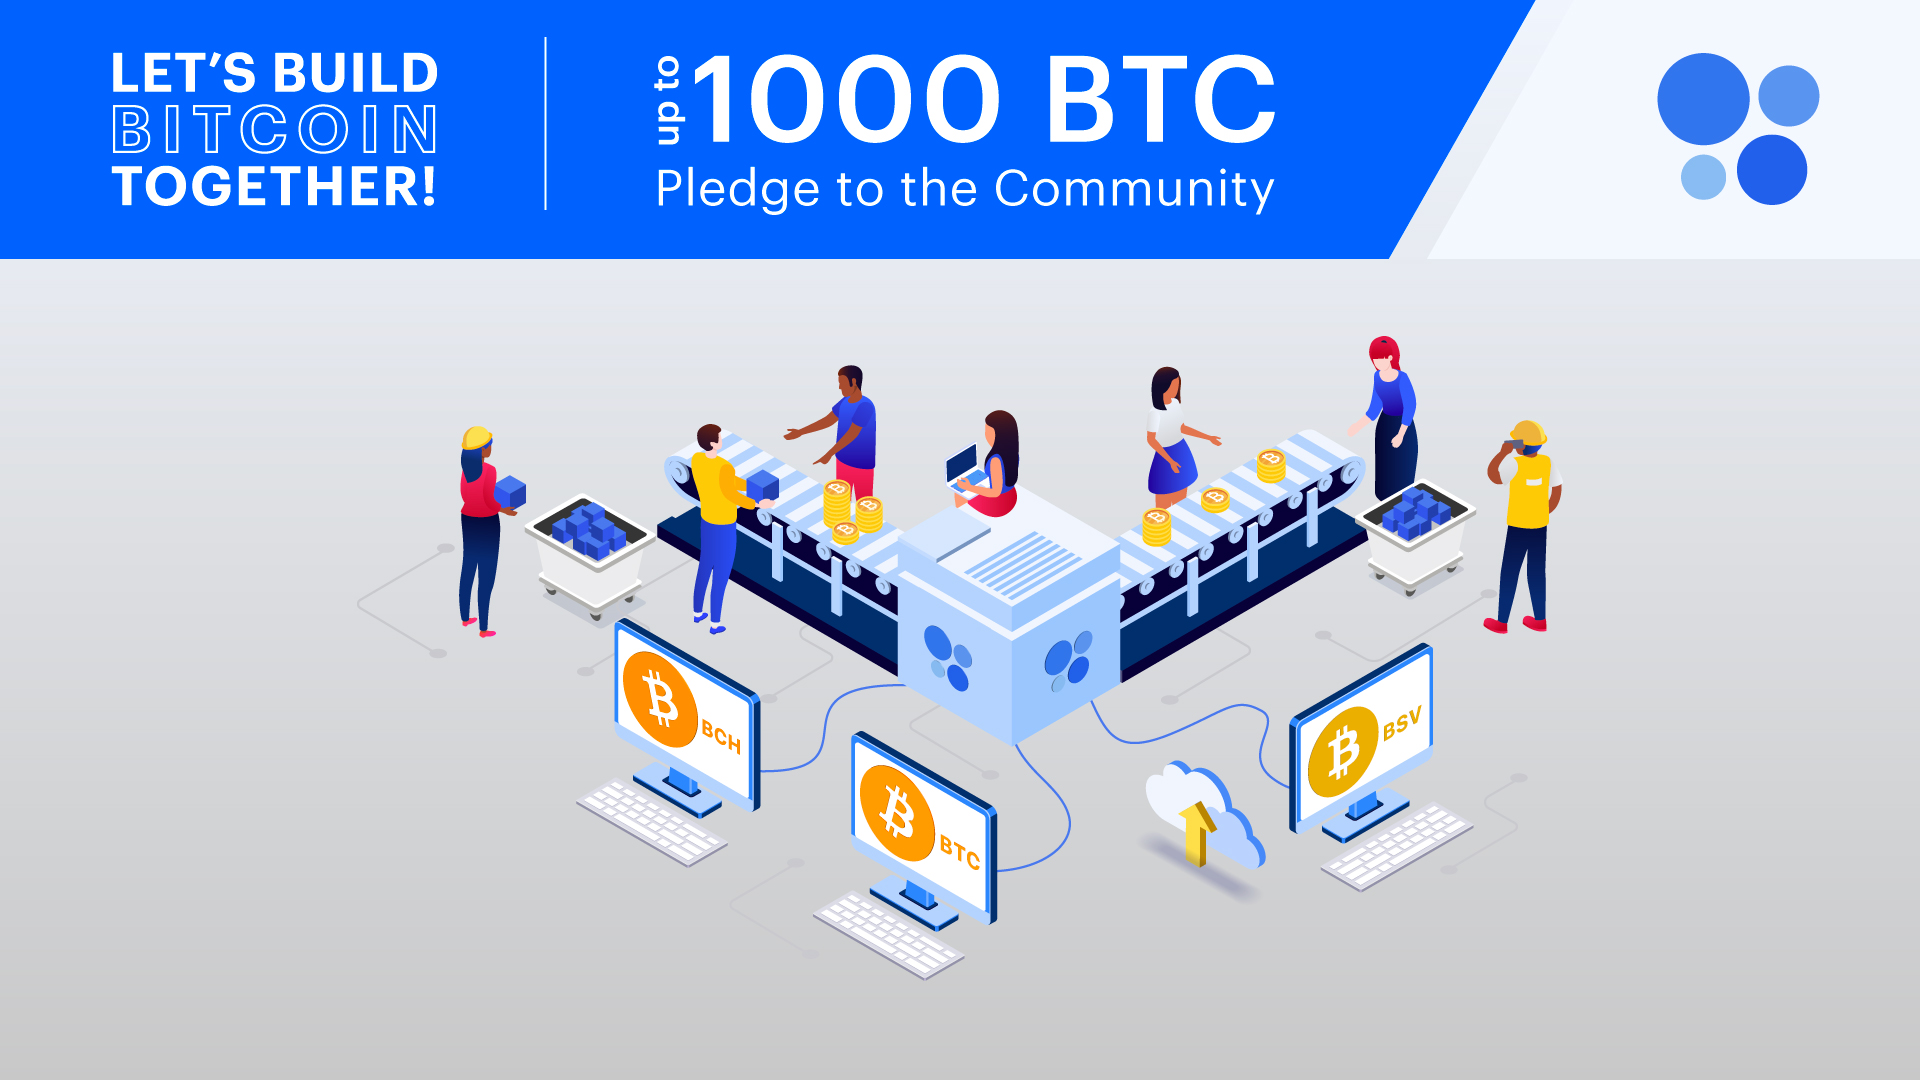 Let's Build Bitcoin Together - Up to 1000 BTC Pledge to the Community